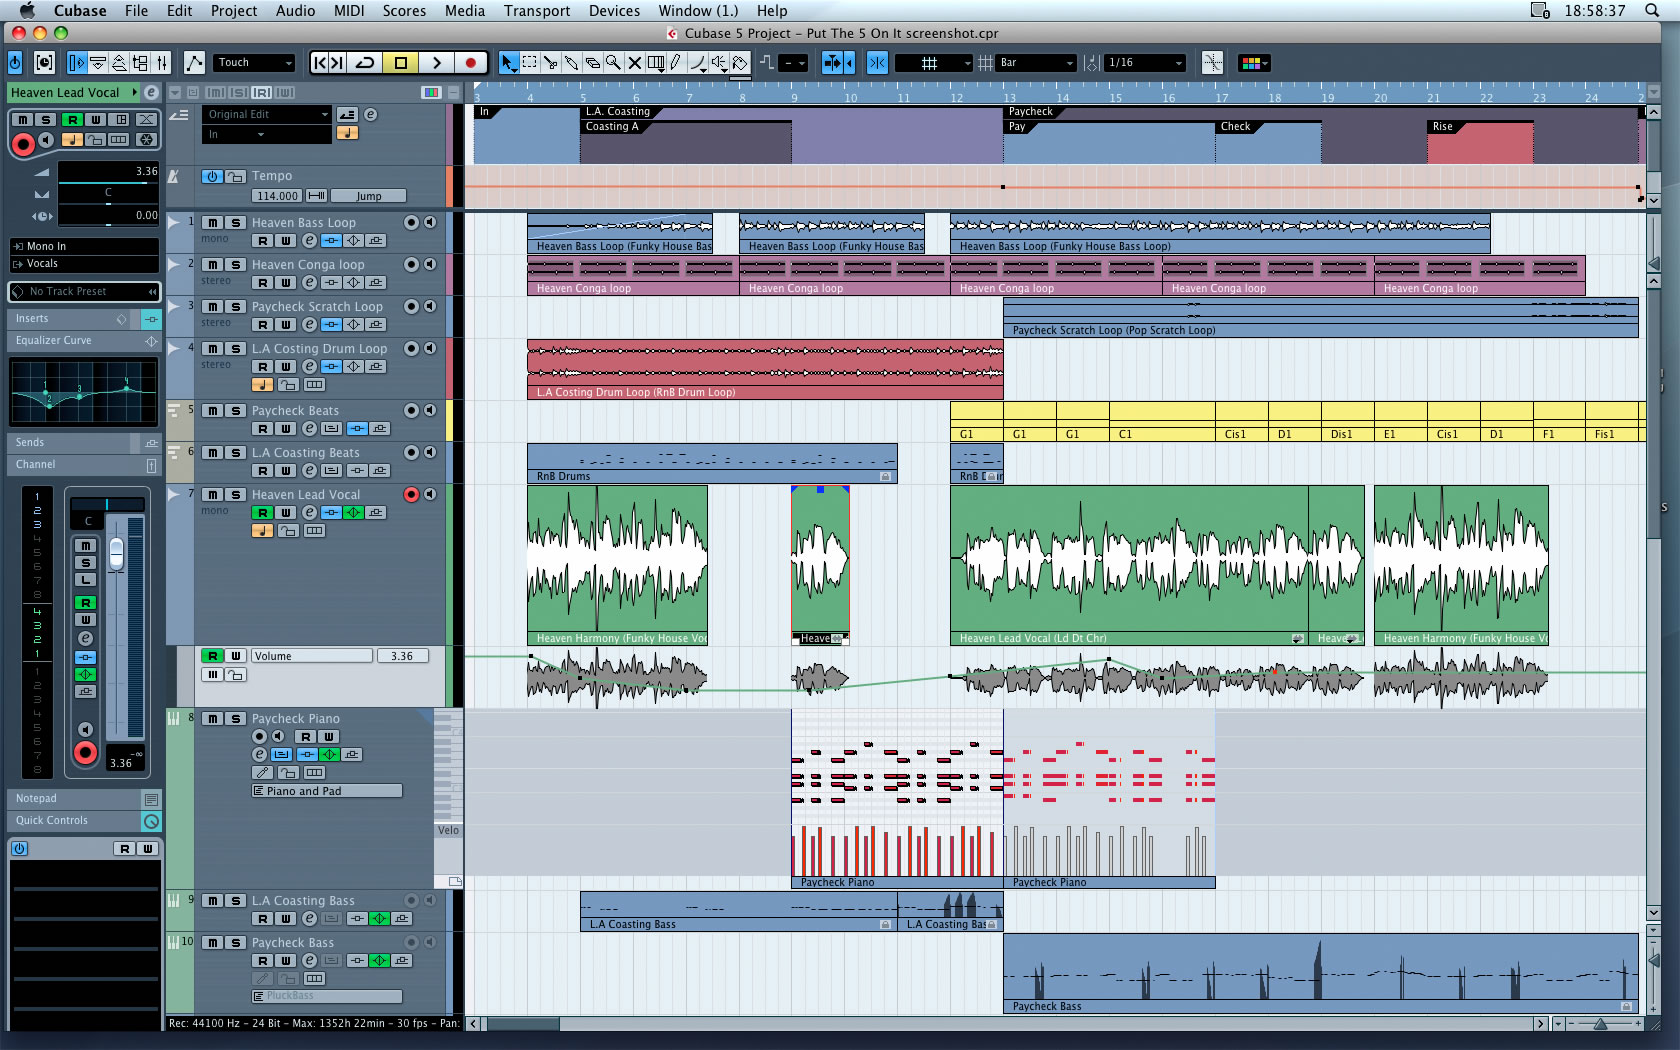 Cubase 7.5.10 Mac software screenshot